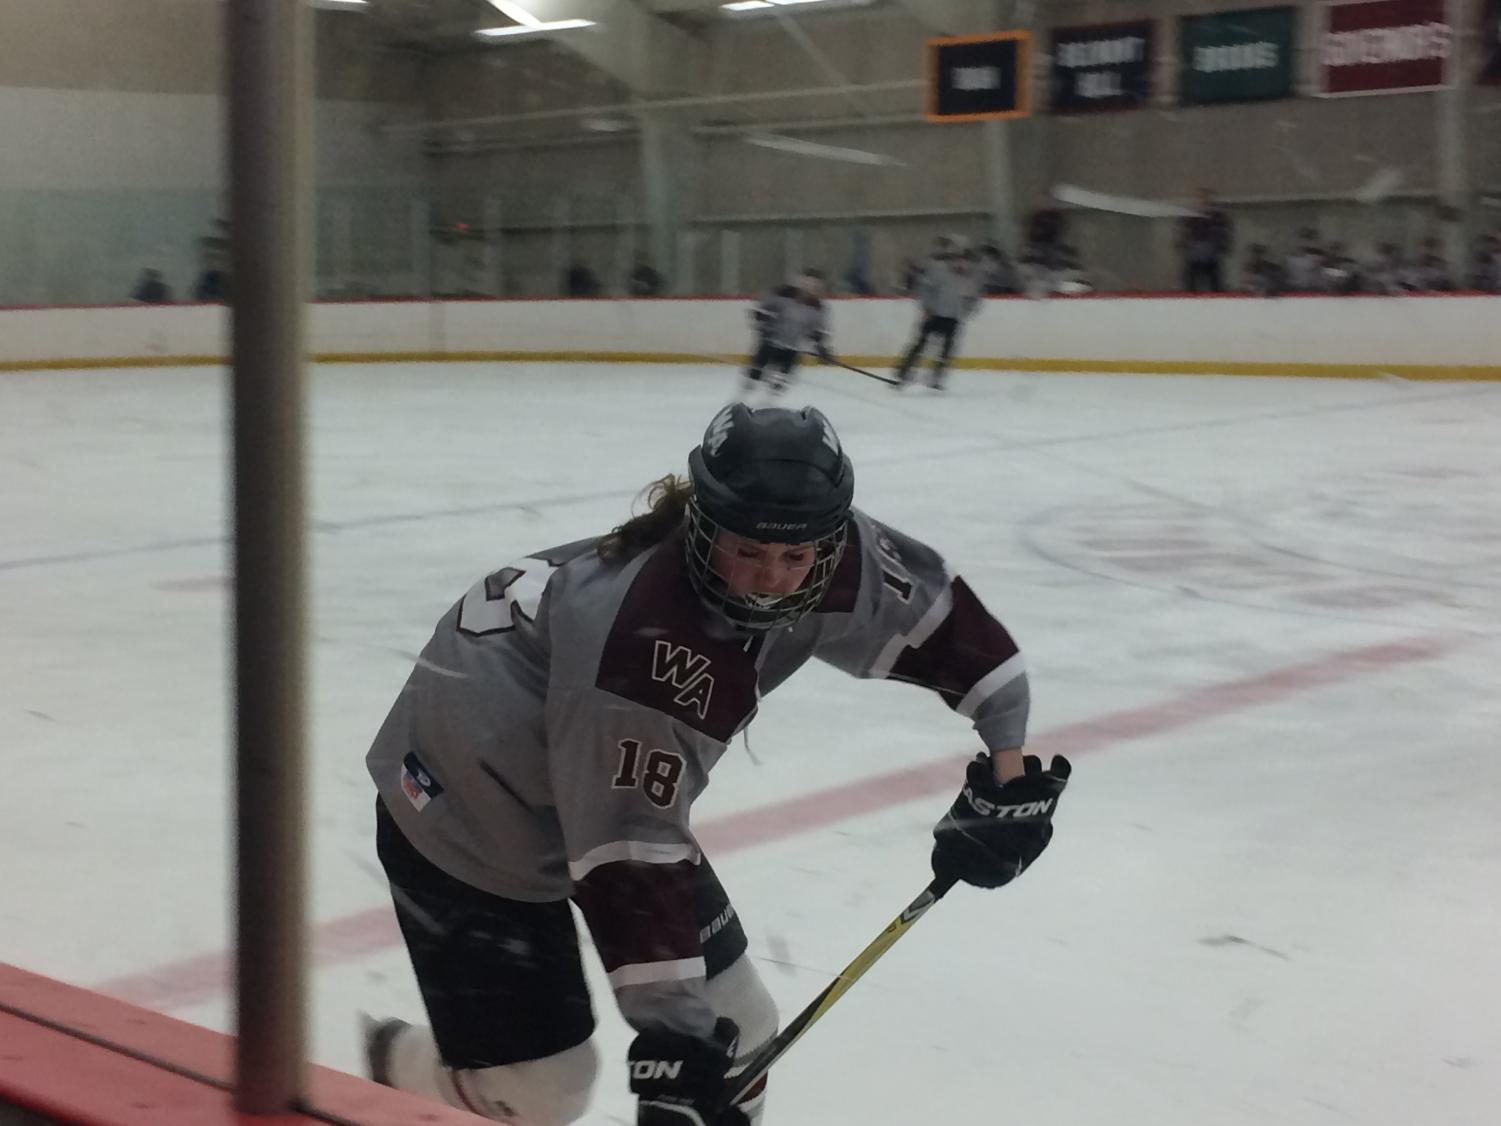 Nothing+but+hard+work+shown+in+Katie+Popp%27s+face+as+she+takes+the+puck+up+the+ice